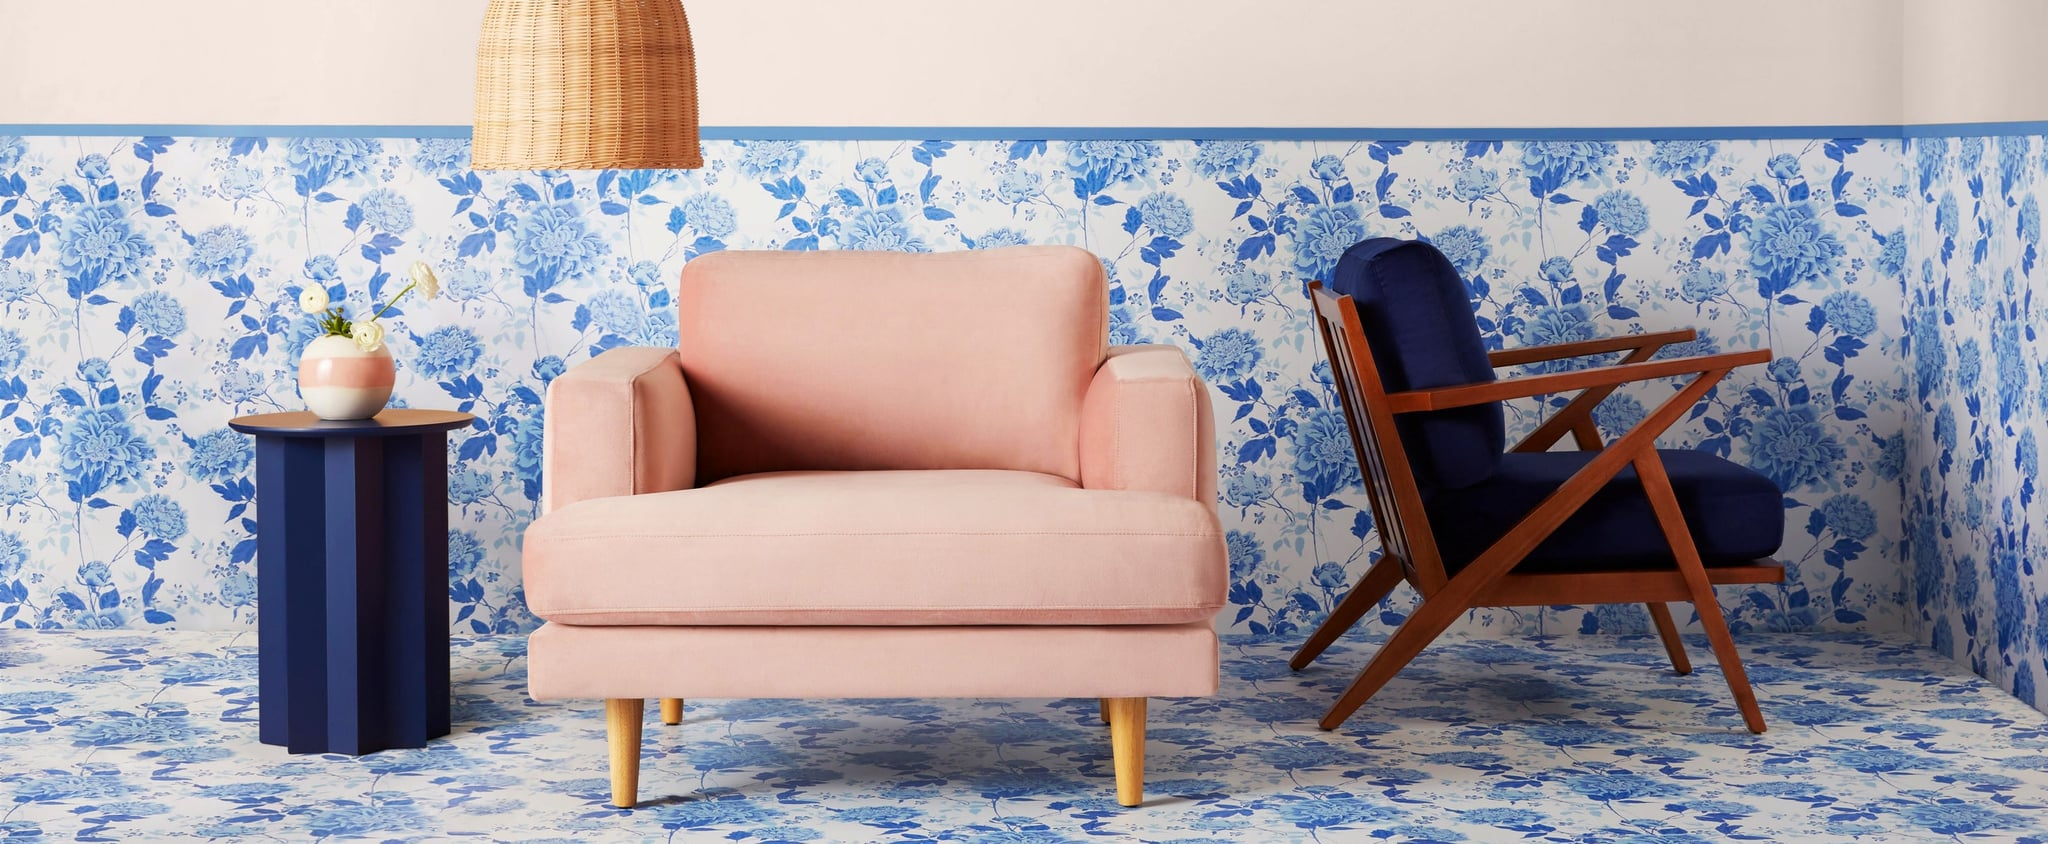 Best Furniture From Drew Barrymore Flower Home at Walmart